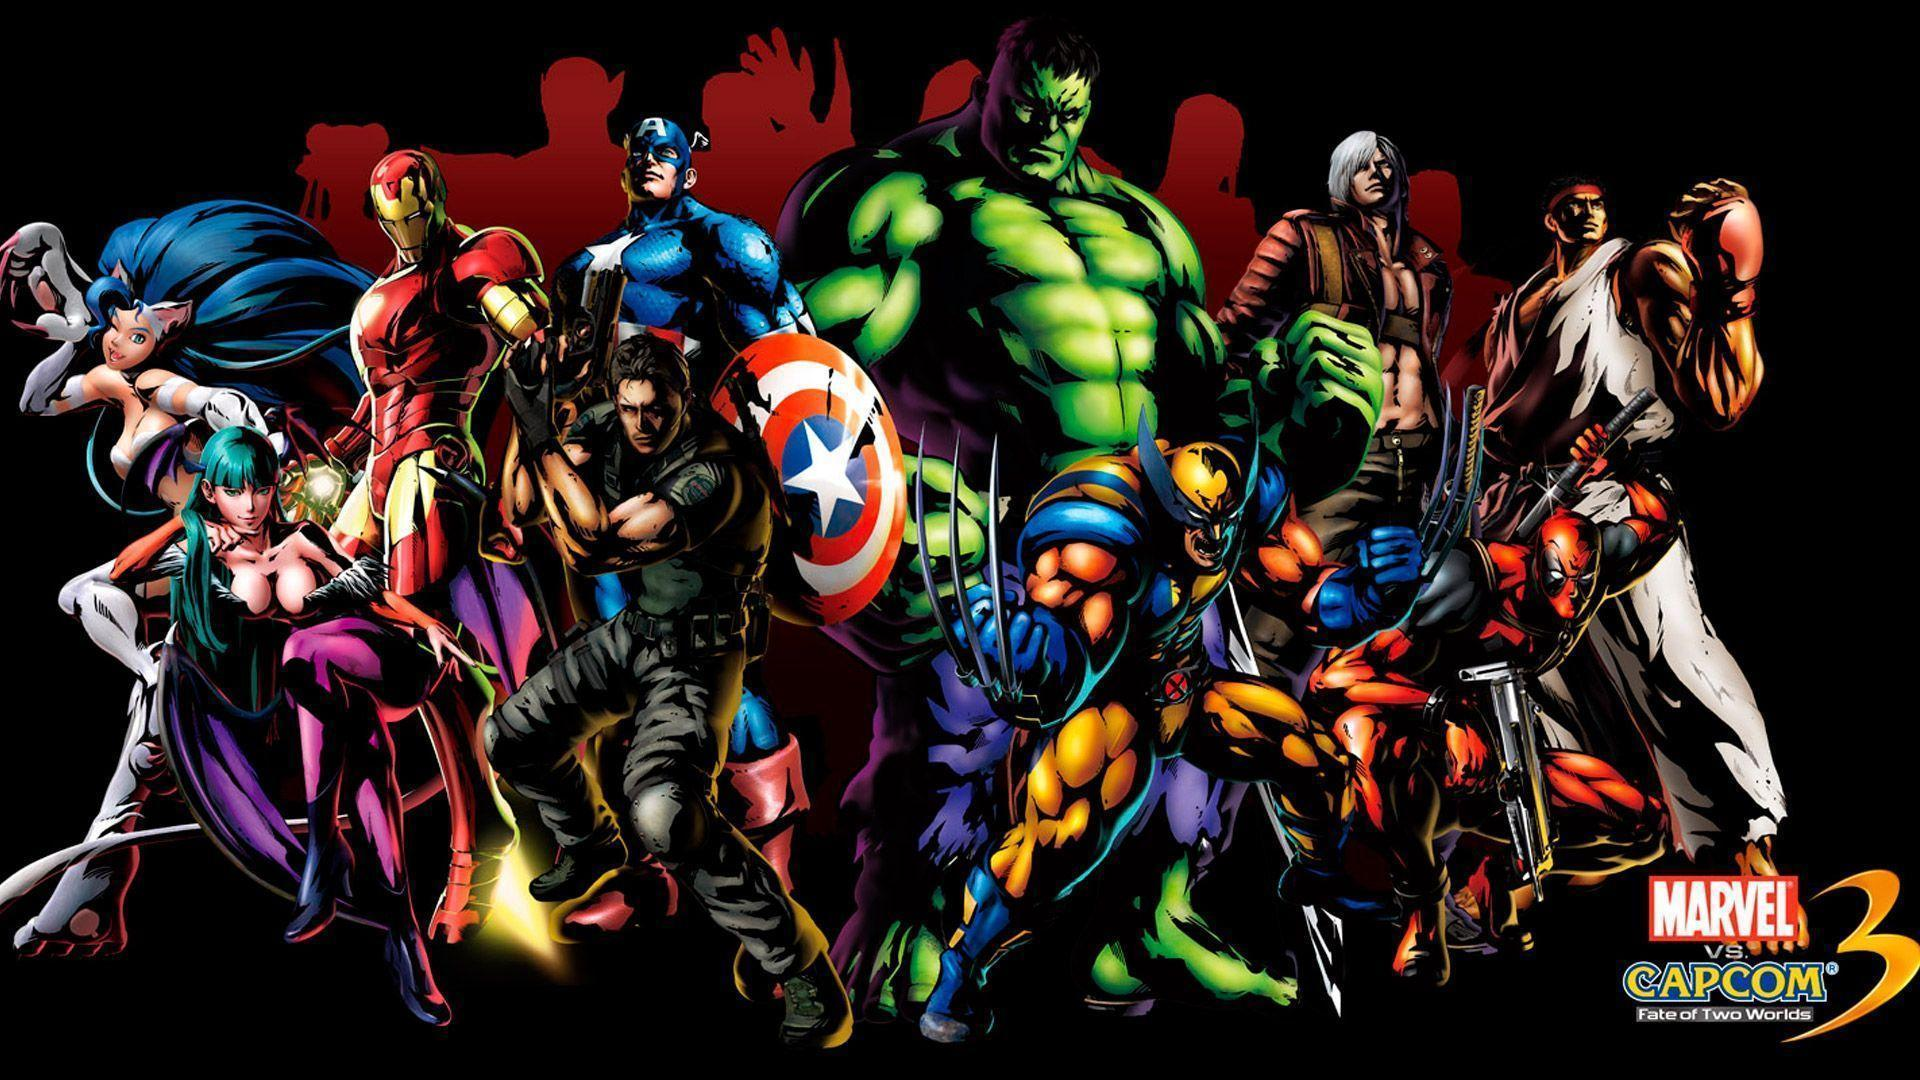 marvel hd wallpapers wallpaper cave Resolution Clip Art High Resolution Clip Art Summer